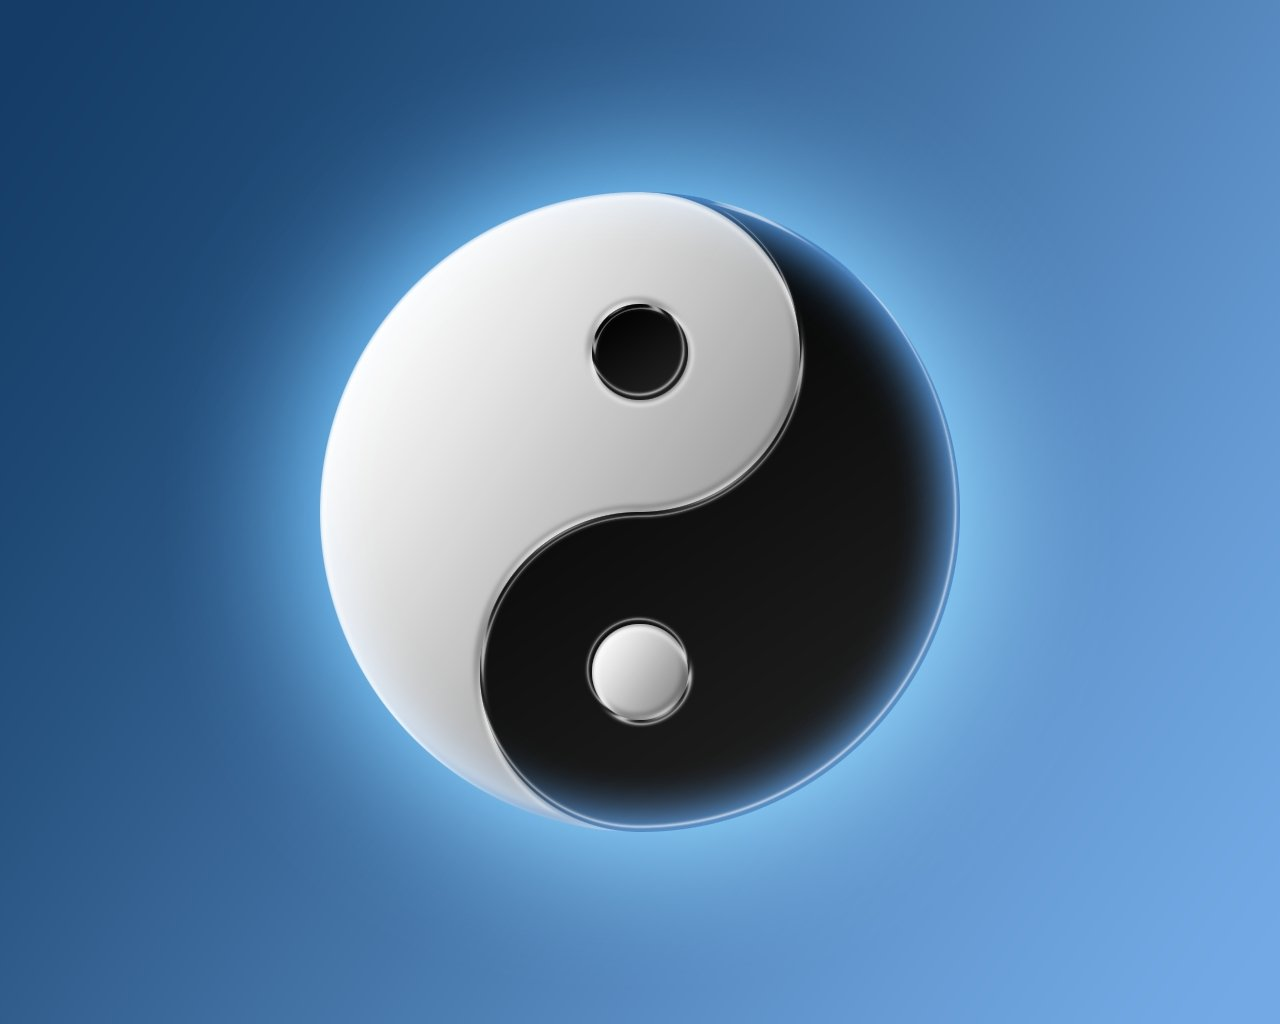 HD-Ying-Yang-1920%C3%971080-Yin-Yang-Adorable-wallpaper-wpc9005977